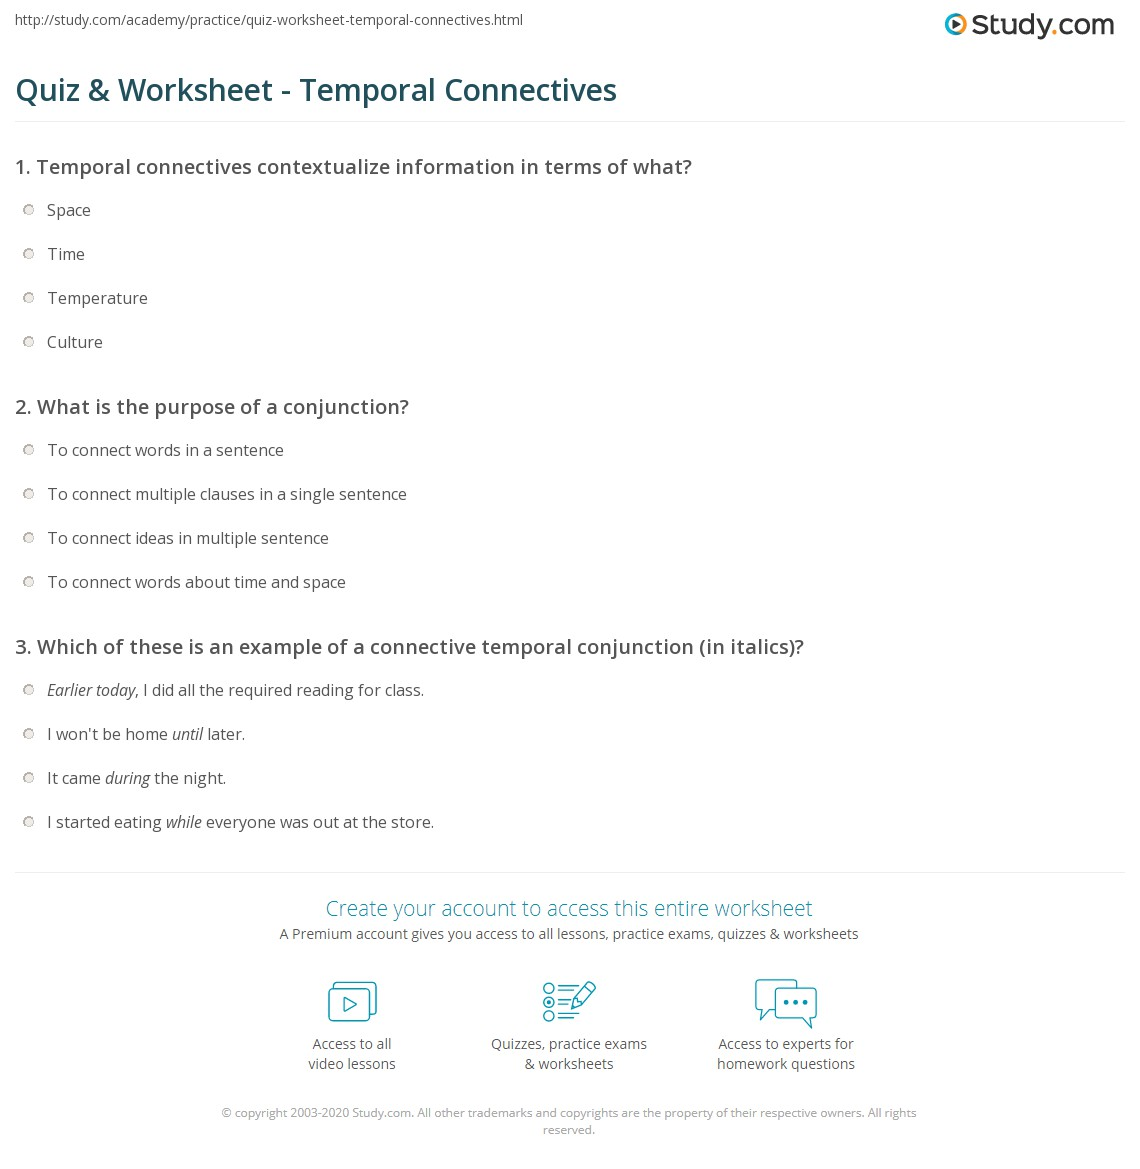 worksheets on connectives – trungcollection further Free Printable Worksheets Kindergarten Maths For And  prehension likewise Clock Worksheets Grade 2 Half Past Time Elapsed Worksheet 3 together with Coordinating And Subordinating Conjunctions Worksheets Grammar additionally English Exercises  Connectives 02  Author Bouabdellah additionally Quiz   Worksheet   Temporal Connectives   Study together with Worksheet  english worksheets for grade 5  English Printable furthermore  likewise 5 g 1 worksheets in addition  together with Exercise on Connectives besides grade 5 worksheets furthermore Time Connectives worksheet by louisacarol   Teaching Resources together with Connectives   PrimaryLeap co uk besides Subordinating Conjunctions Worksheets Grade 5 Connectives Free also Using conjunctions worksheets for grade 1   K5 Learning. on connectives worksheet for grade 5